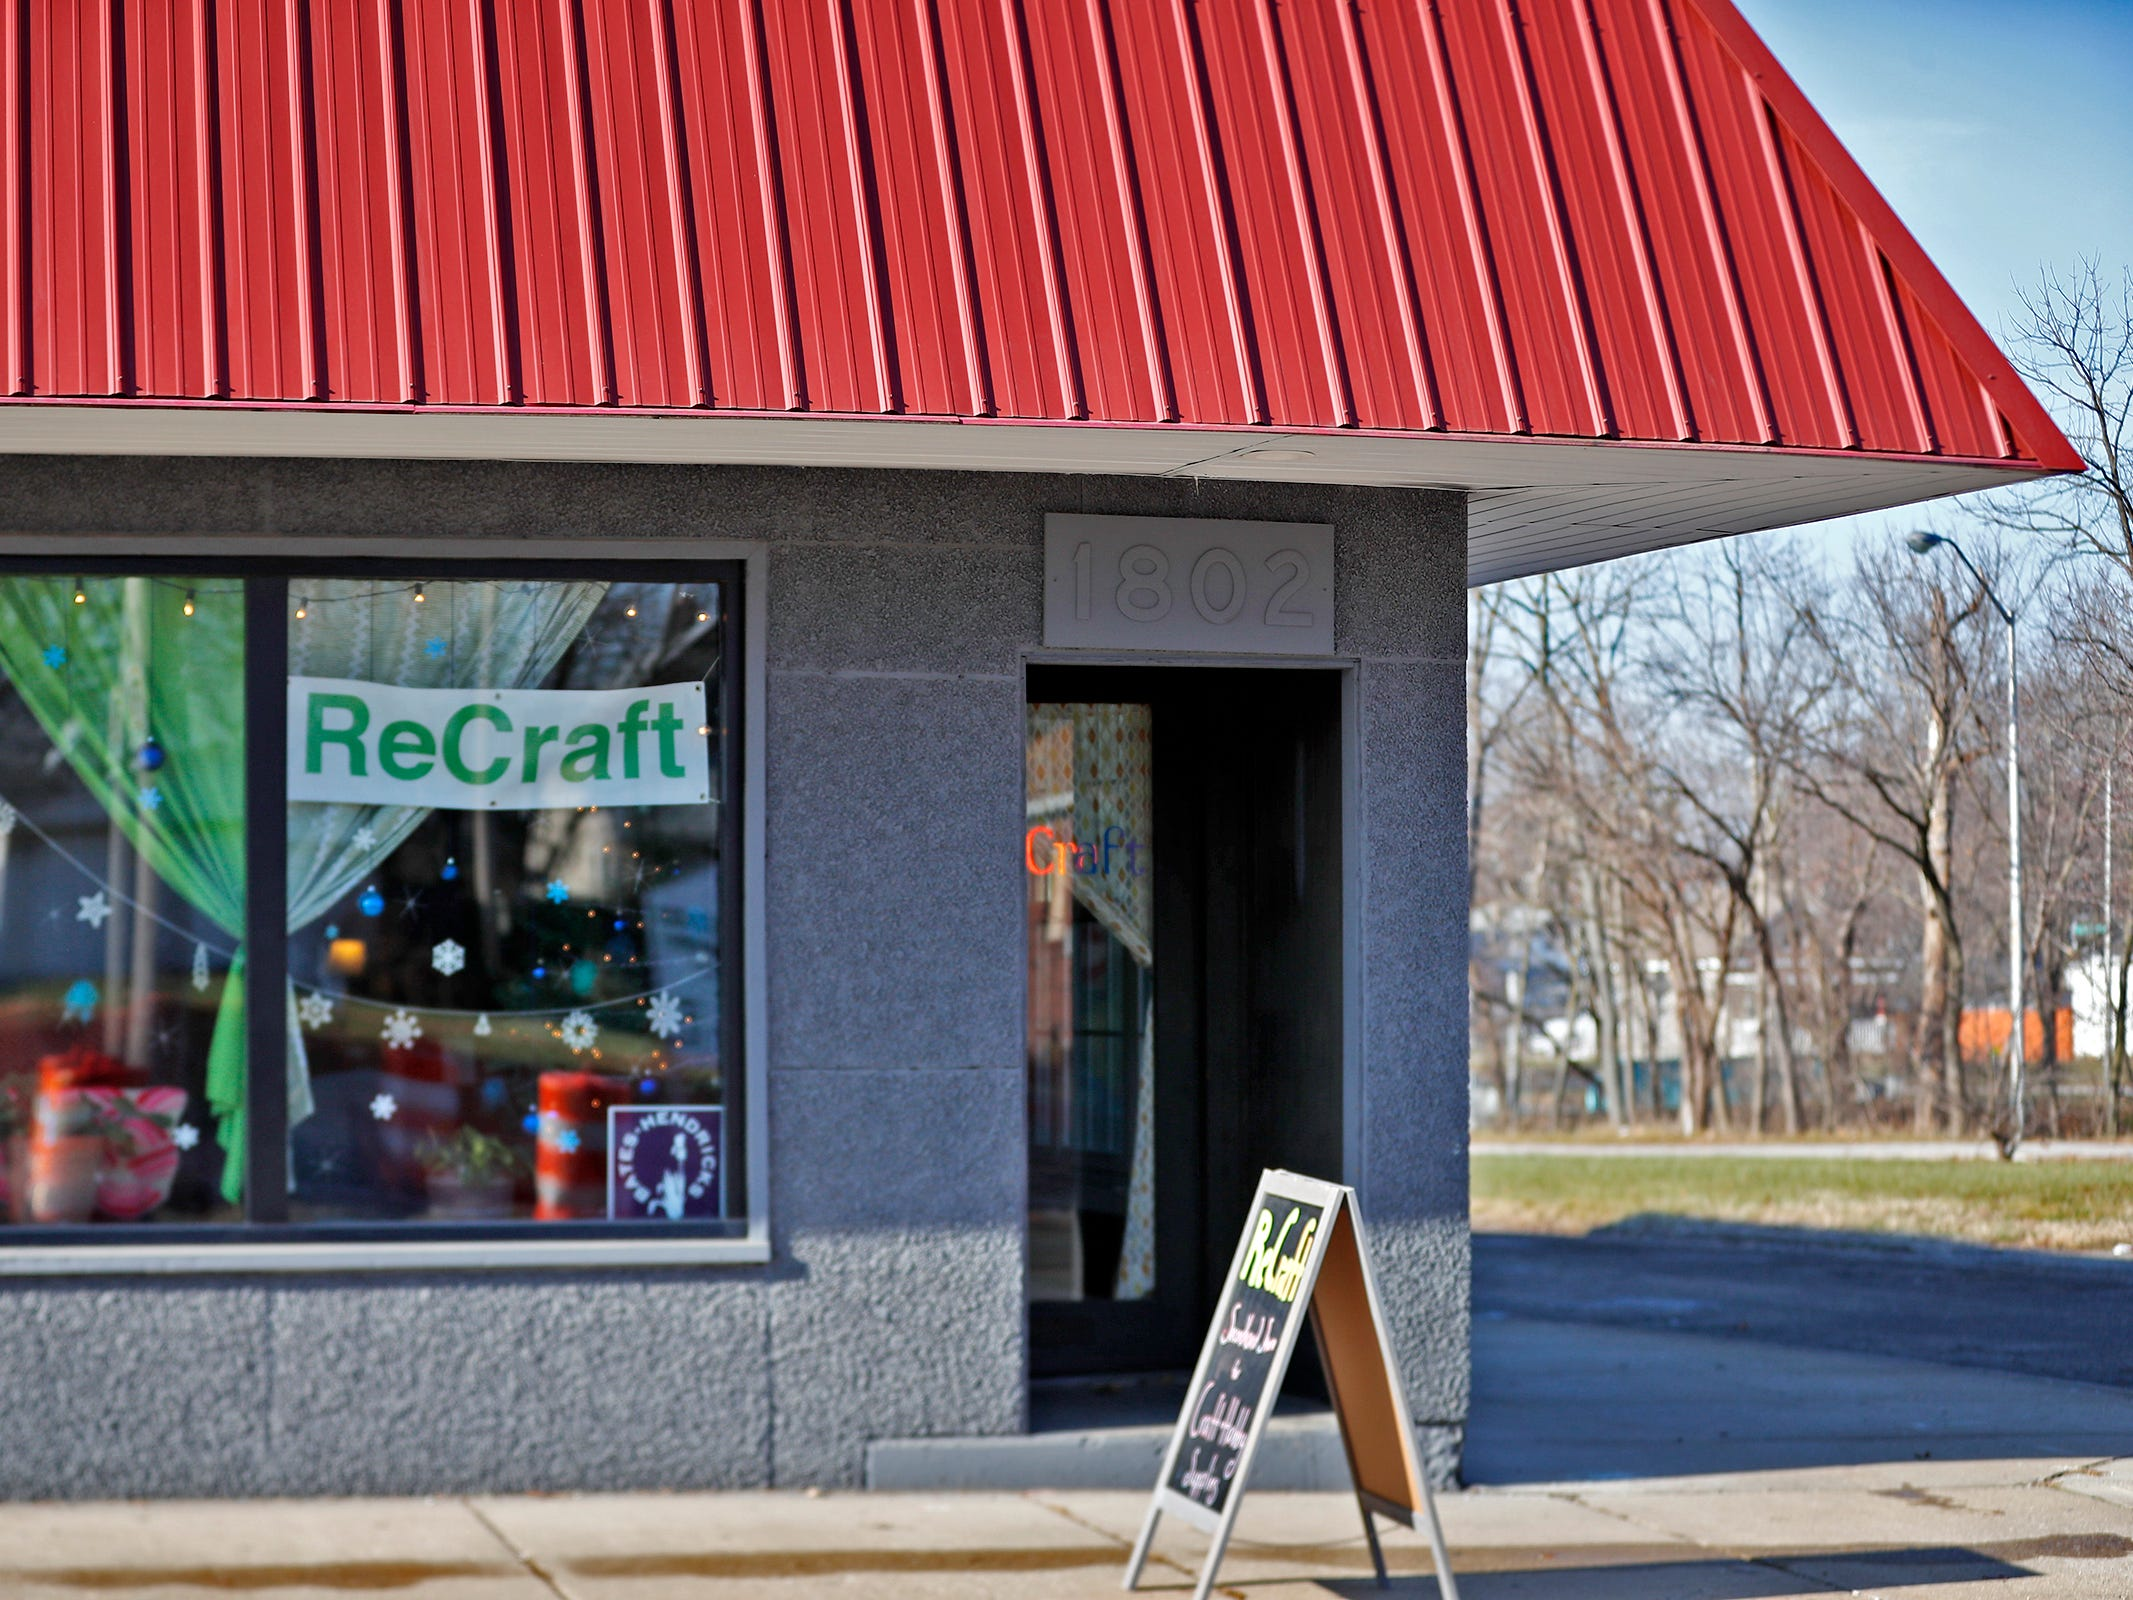 ReCraft is seen at 1802 Shelby St., Tuesday, Dec. 11, 2018.  ReCraft was born out of Bethany Daugherty's love of crafting and her interest in environmental activism.  At the secondhand craft and hobby store, Daugherty also teaches workshops.  Sustainability and environmentalism are a focus of the store.